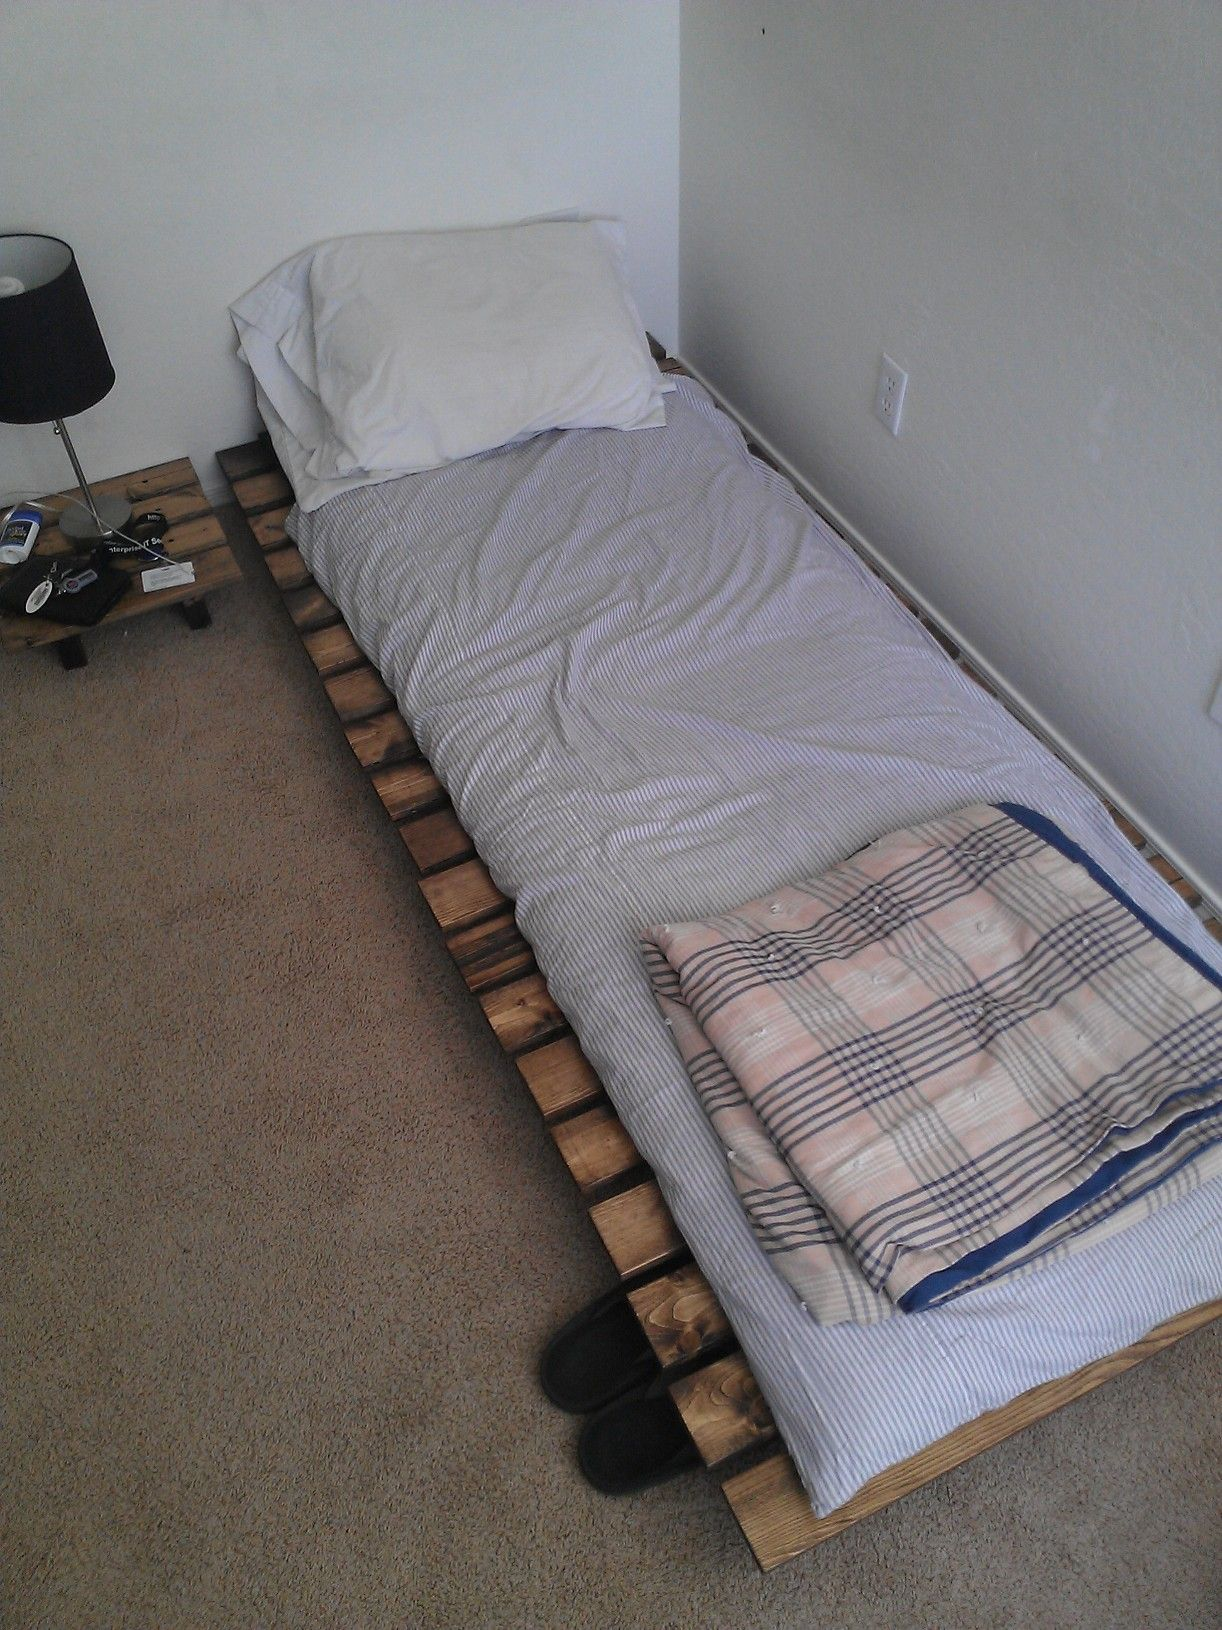 Homemade Bed Nightstand And Japanese Futon